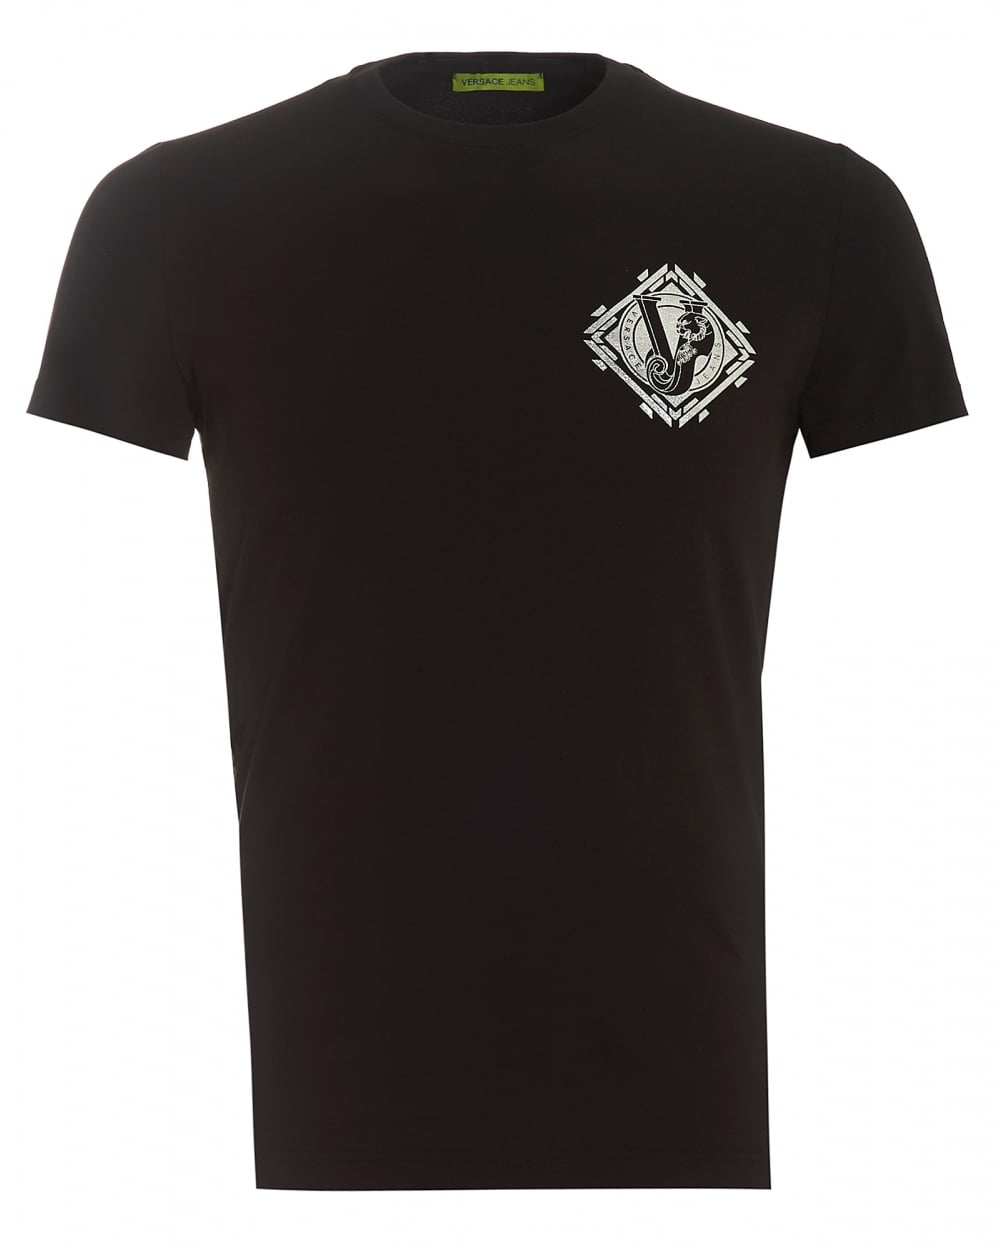 Versace jeans lettered silver tiger logo black t shirt for Silver jeans t shirts